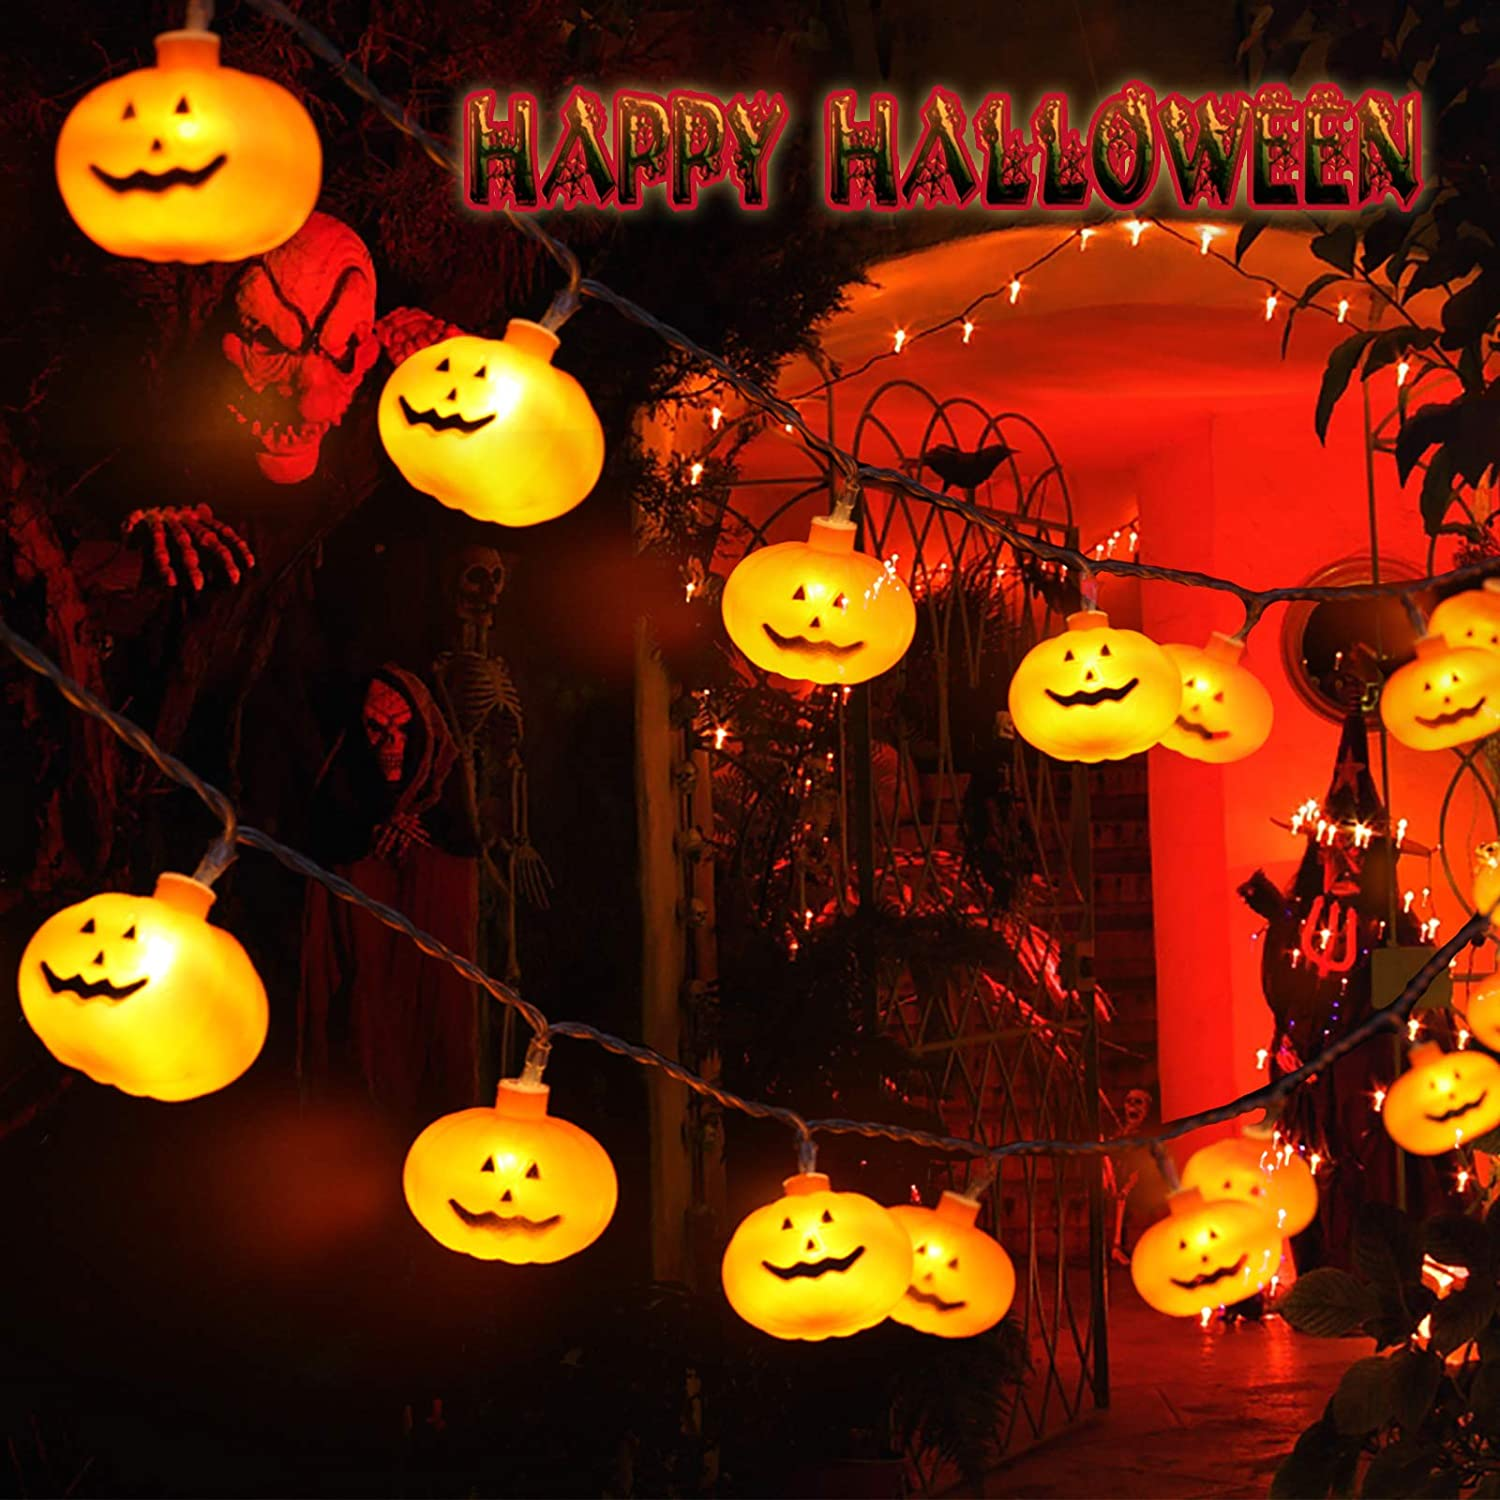 AOYOO Halloween Pumpkin String Lights Decorations Decor for Indoor Outdoor Outside,2 Modes,20 LED Battery Operated 3D Party Orange Small Strobe Lights Yard Decorations Scary